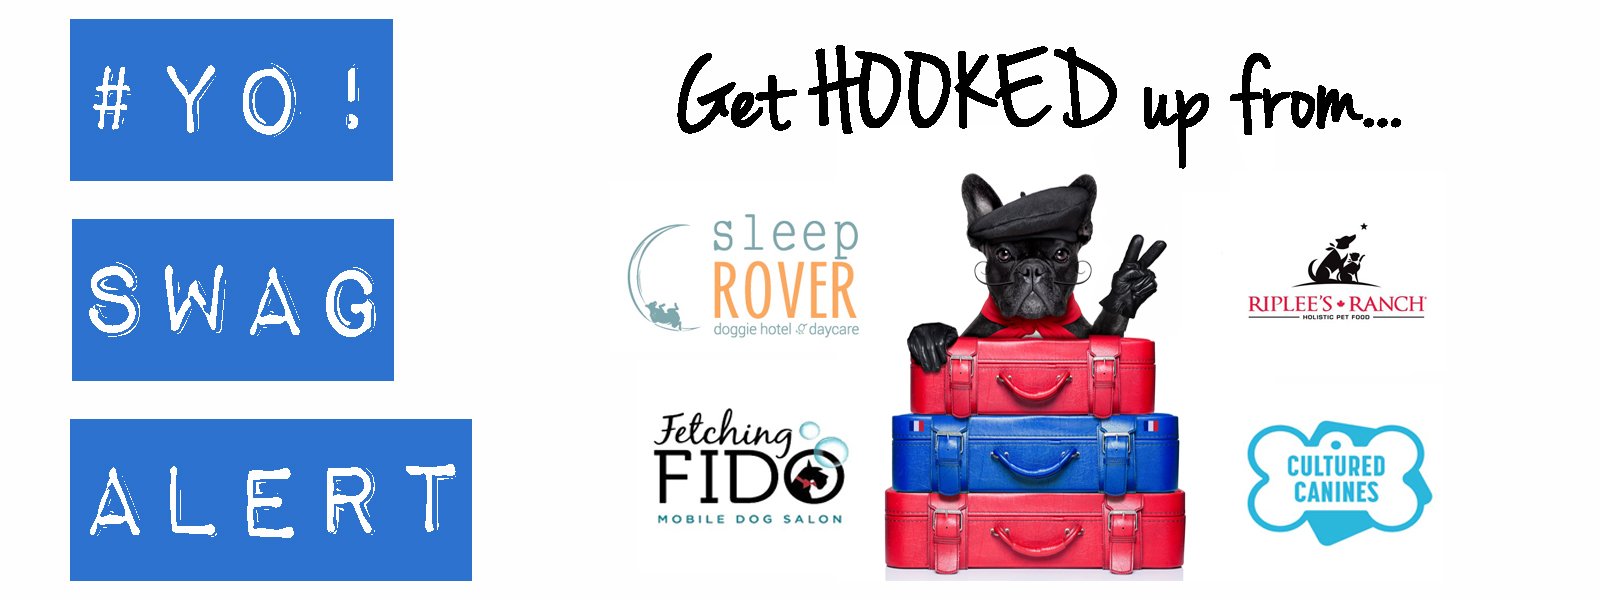 Swag bag?!The way things are going you'll need a suitcase!Be sure to get to Pet-A-Palooza early this year on Sat & Sun and get hook up with awesome swag from Sleep Rover, Cultured Canines and Fetching Fido.